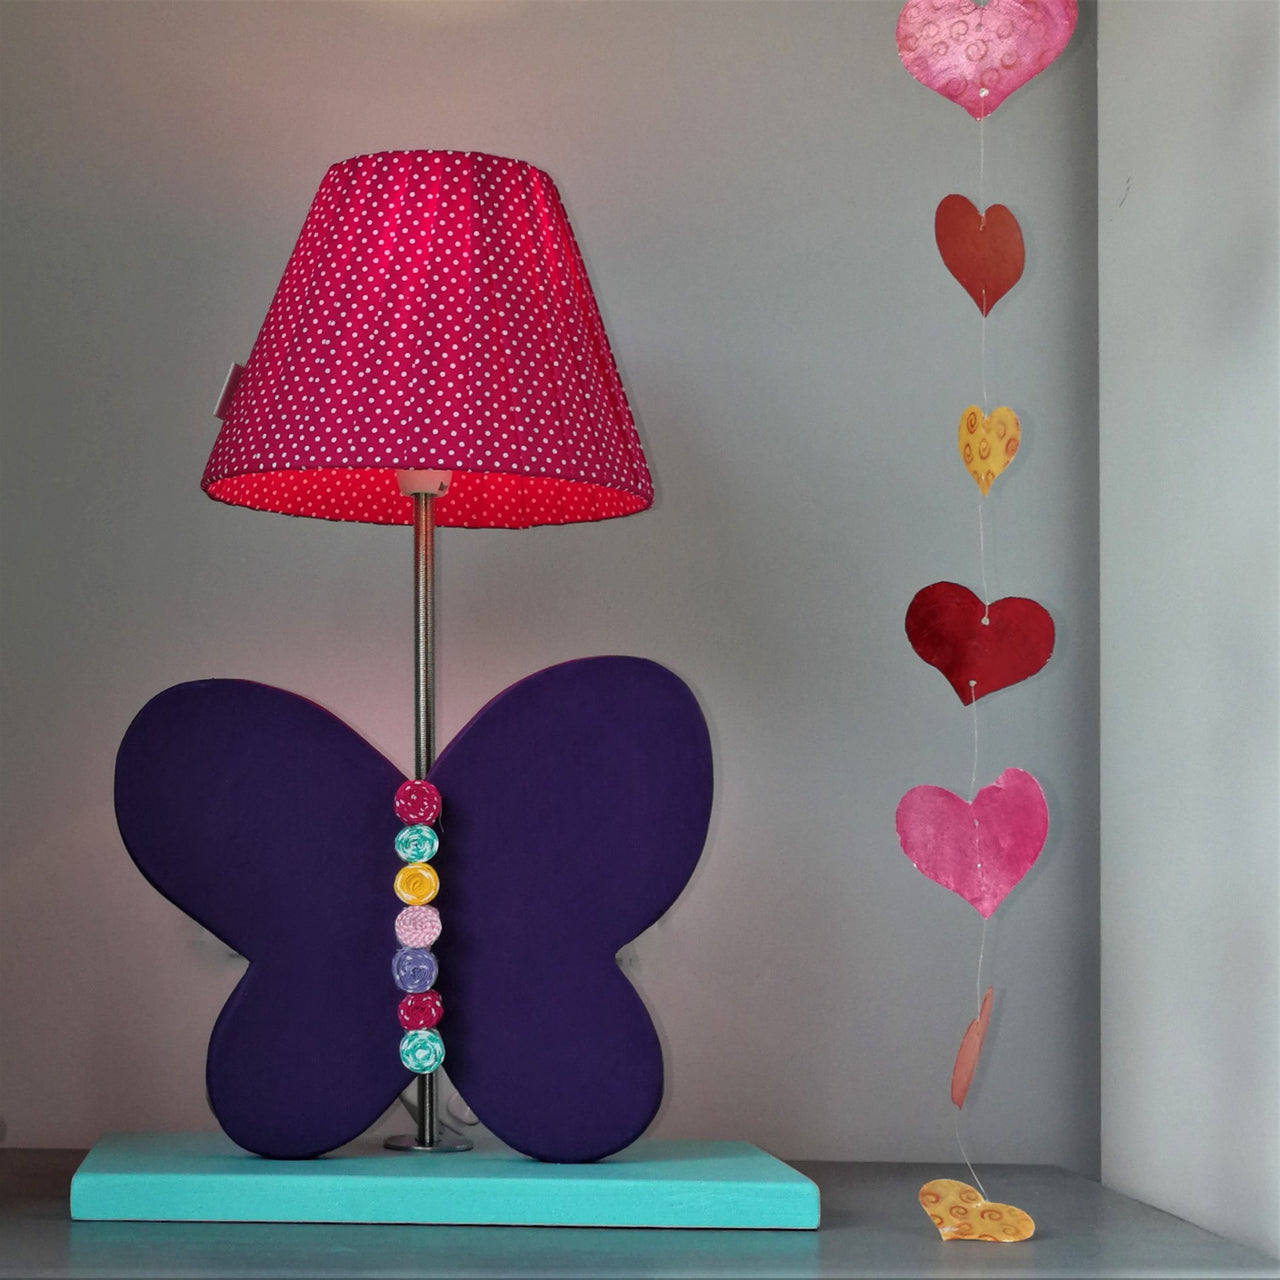 Stunning side lamp with a turquoise wooden base and a purple butterfly design. Creatively constructed from wood and layered fabric. The lampshade is handmade with matching deep pink fabric with white spots.